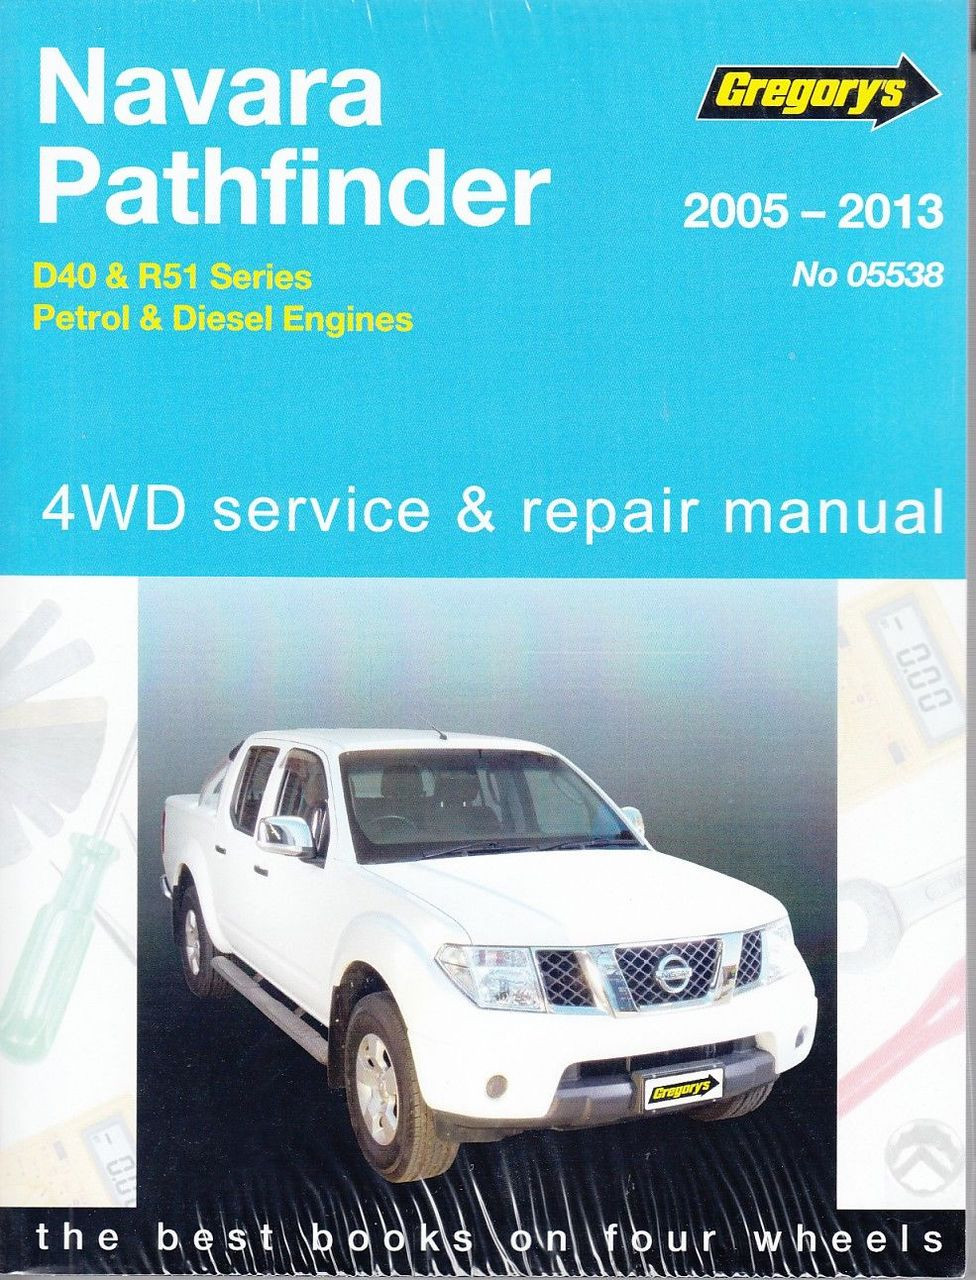 2014 Nissan Navara D40 Workshop Manual Haynes Wiring Diagram Hilux Stereo Further Radio Image Not Found Or Type Unknown Download Free